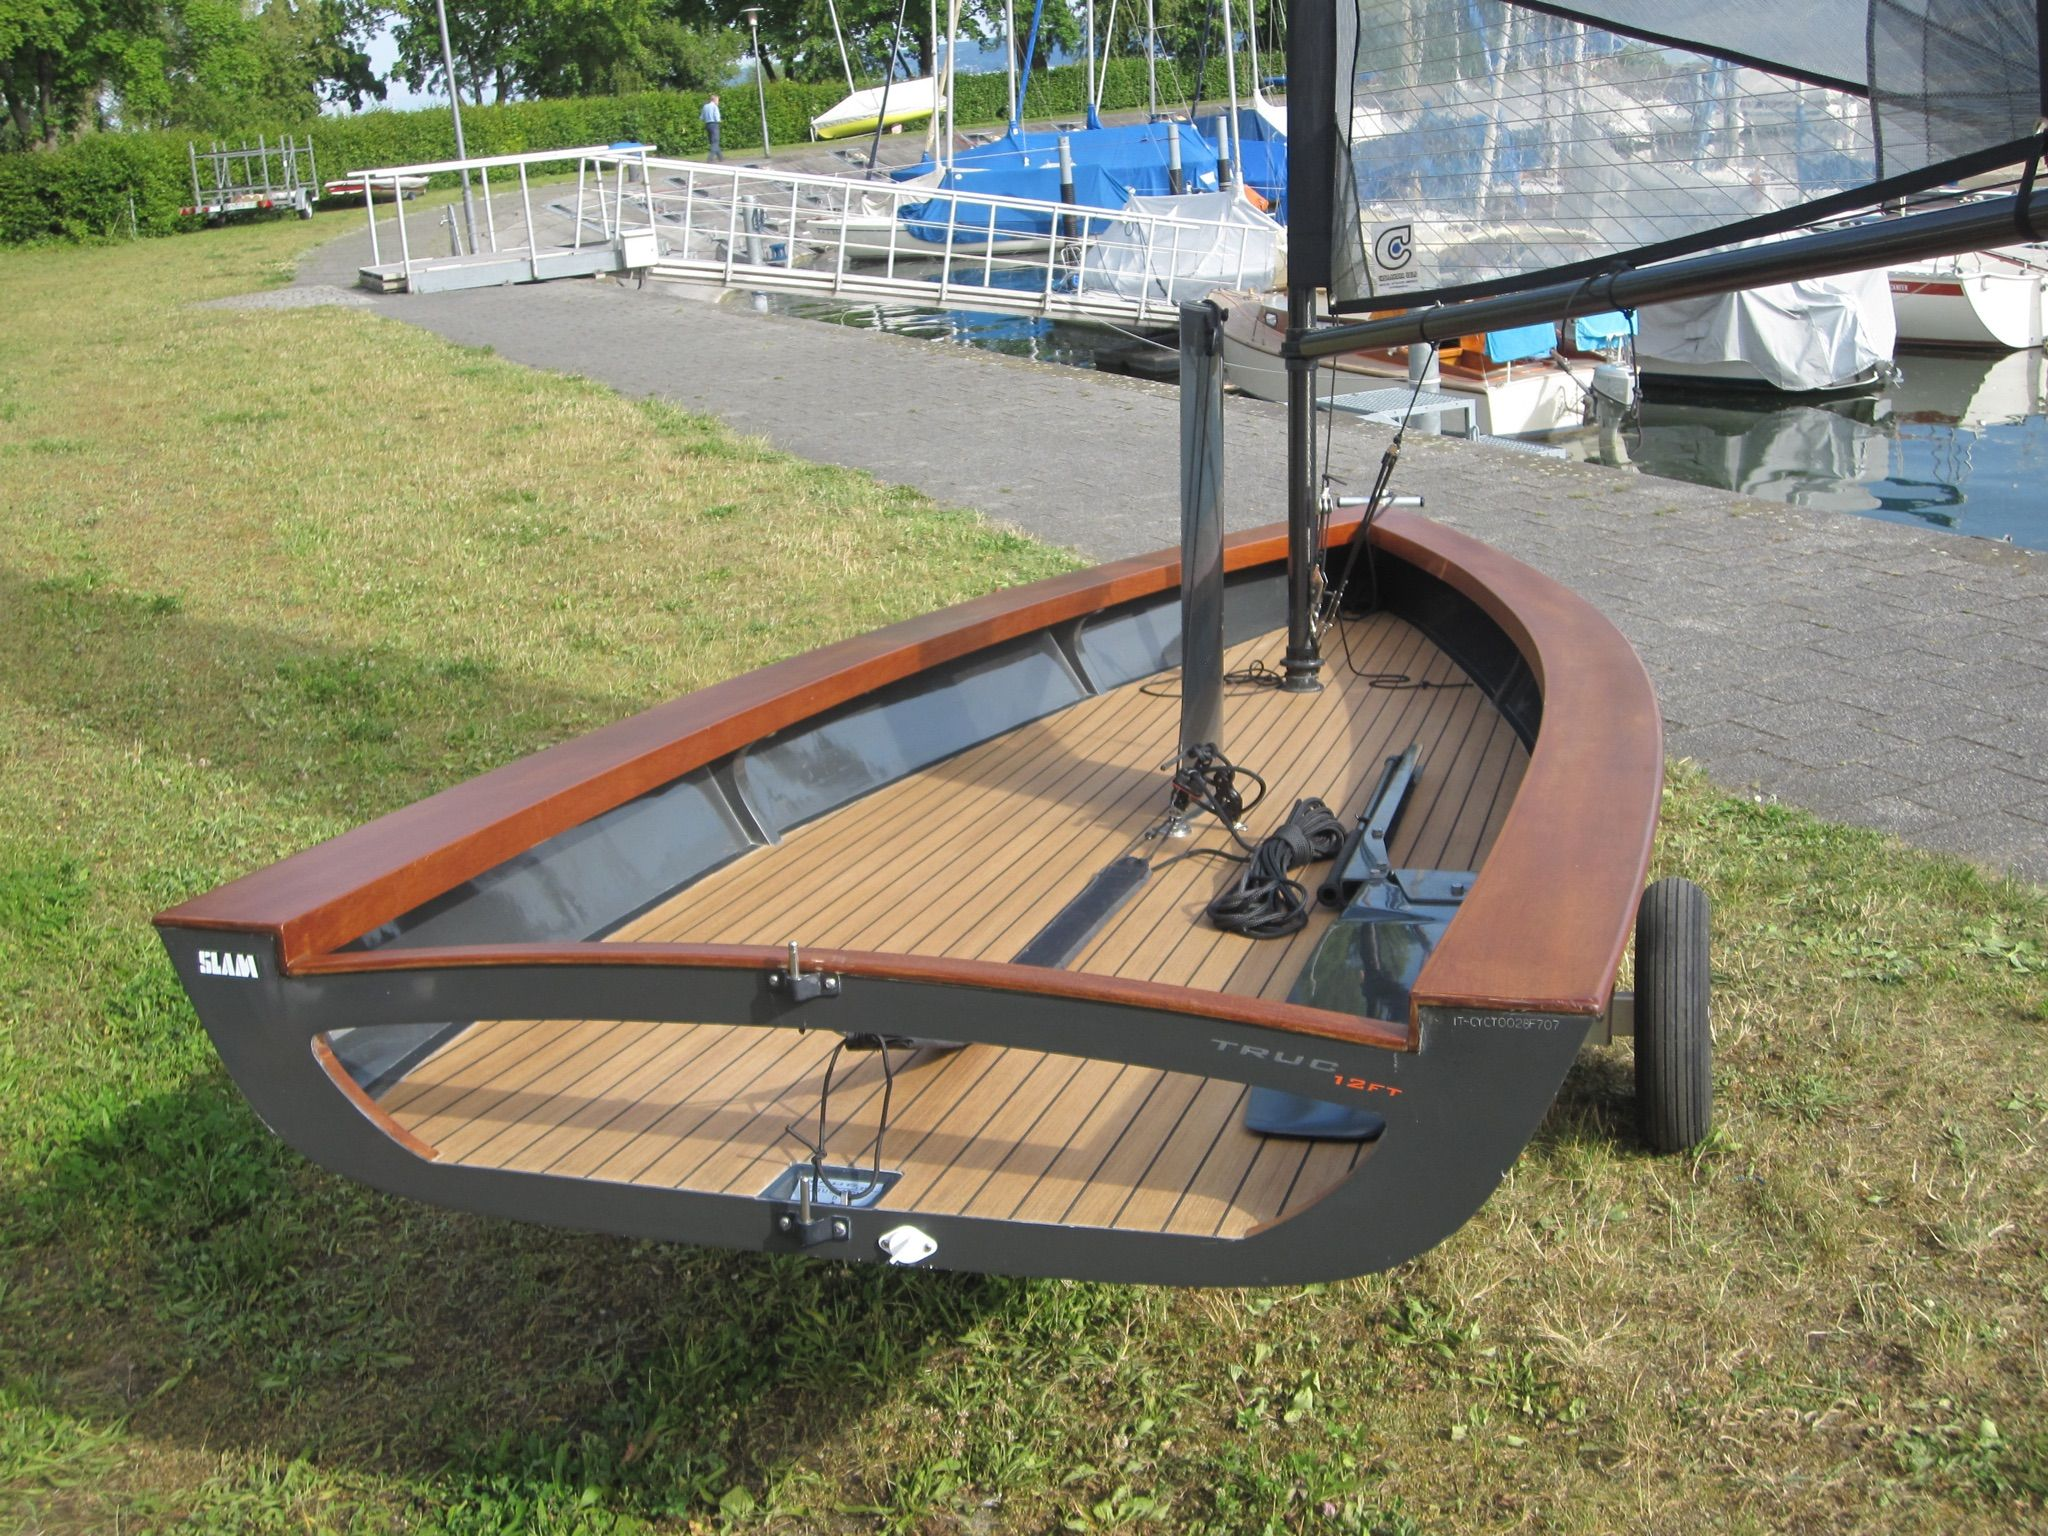 Home built jet dinghy s from new zealand boat design forums - Wooden Sailboat Wooden Boats Runabout Boat Boat Design Dinghy Boat Building Sail Boats Carpentry Paddles